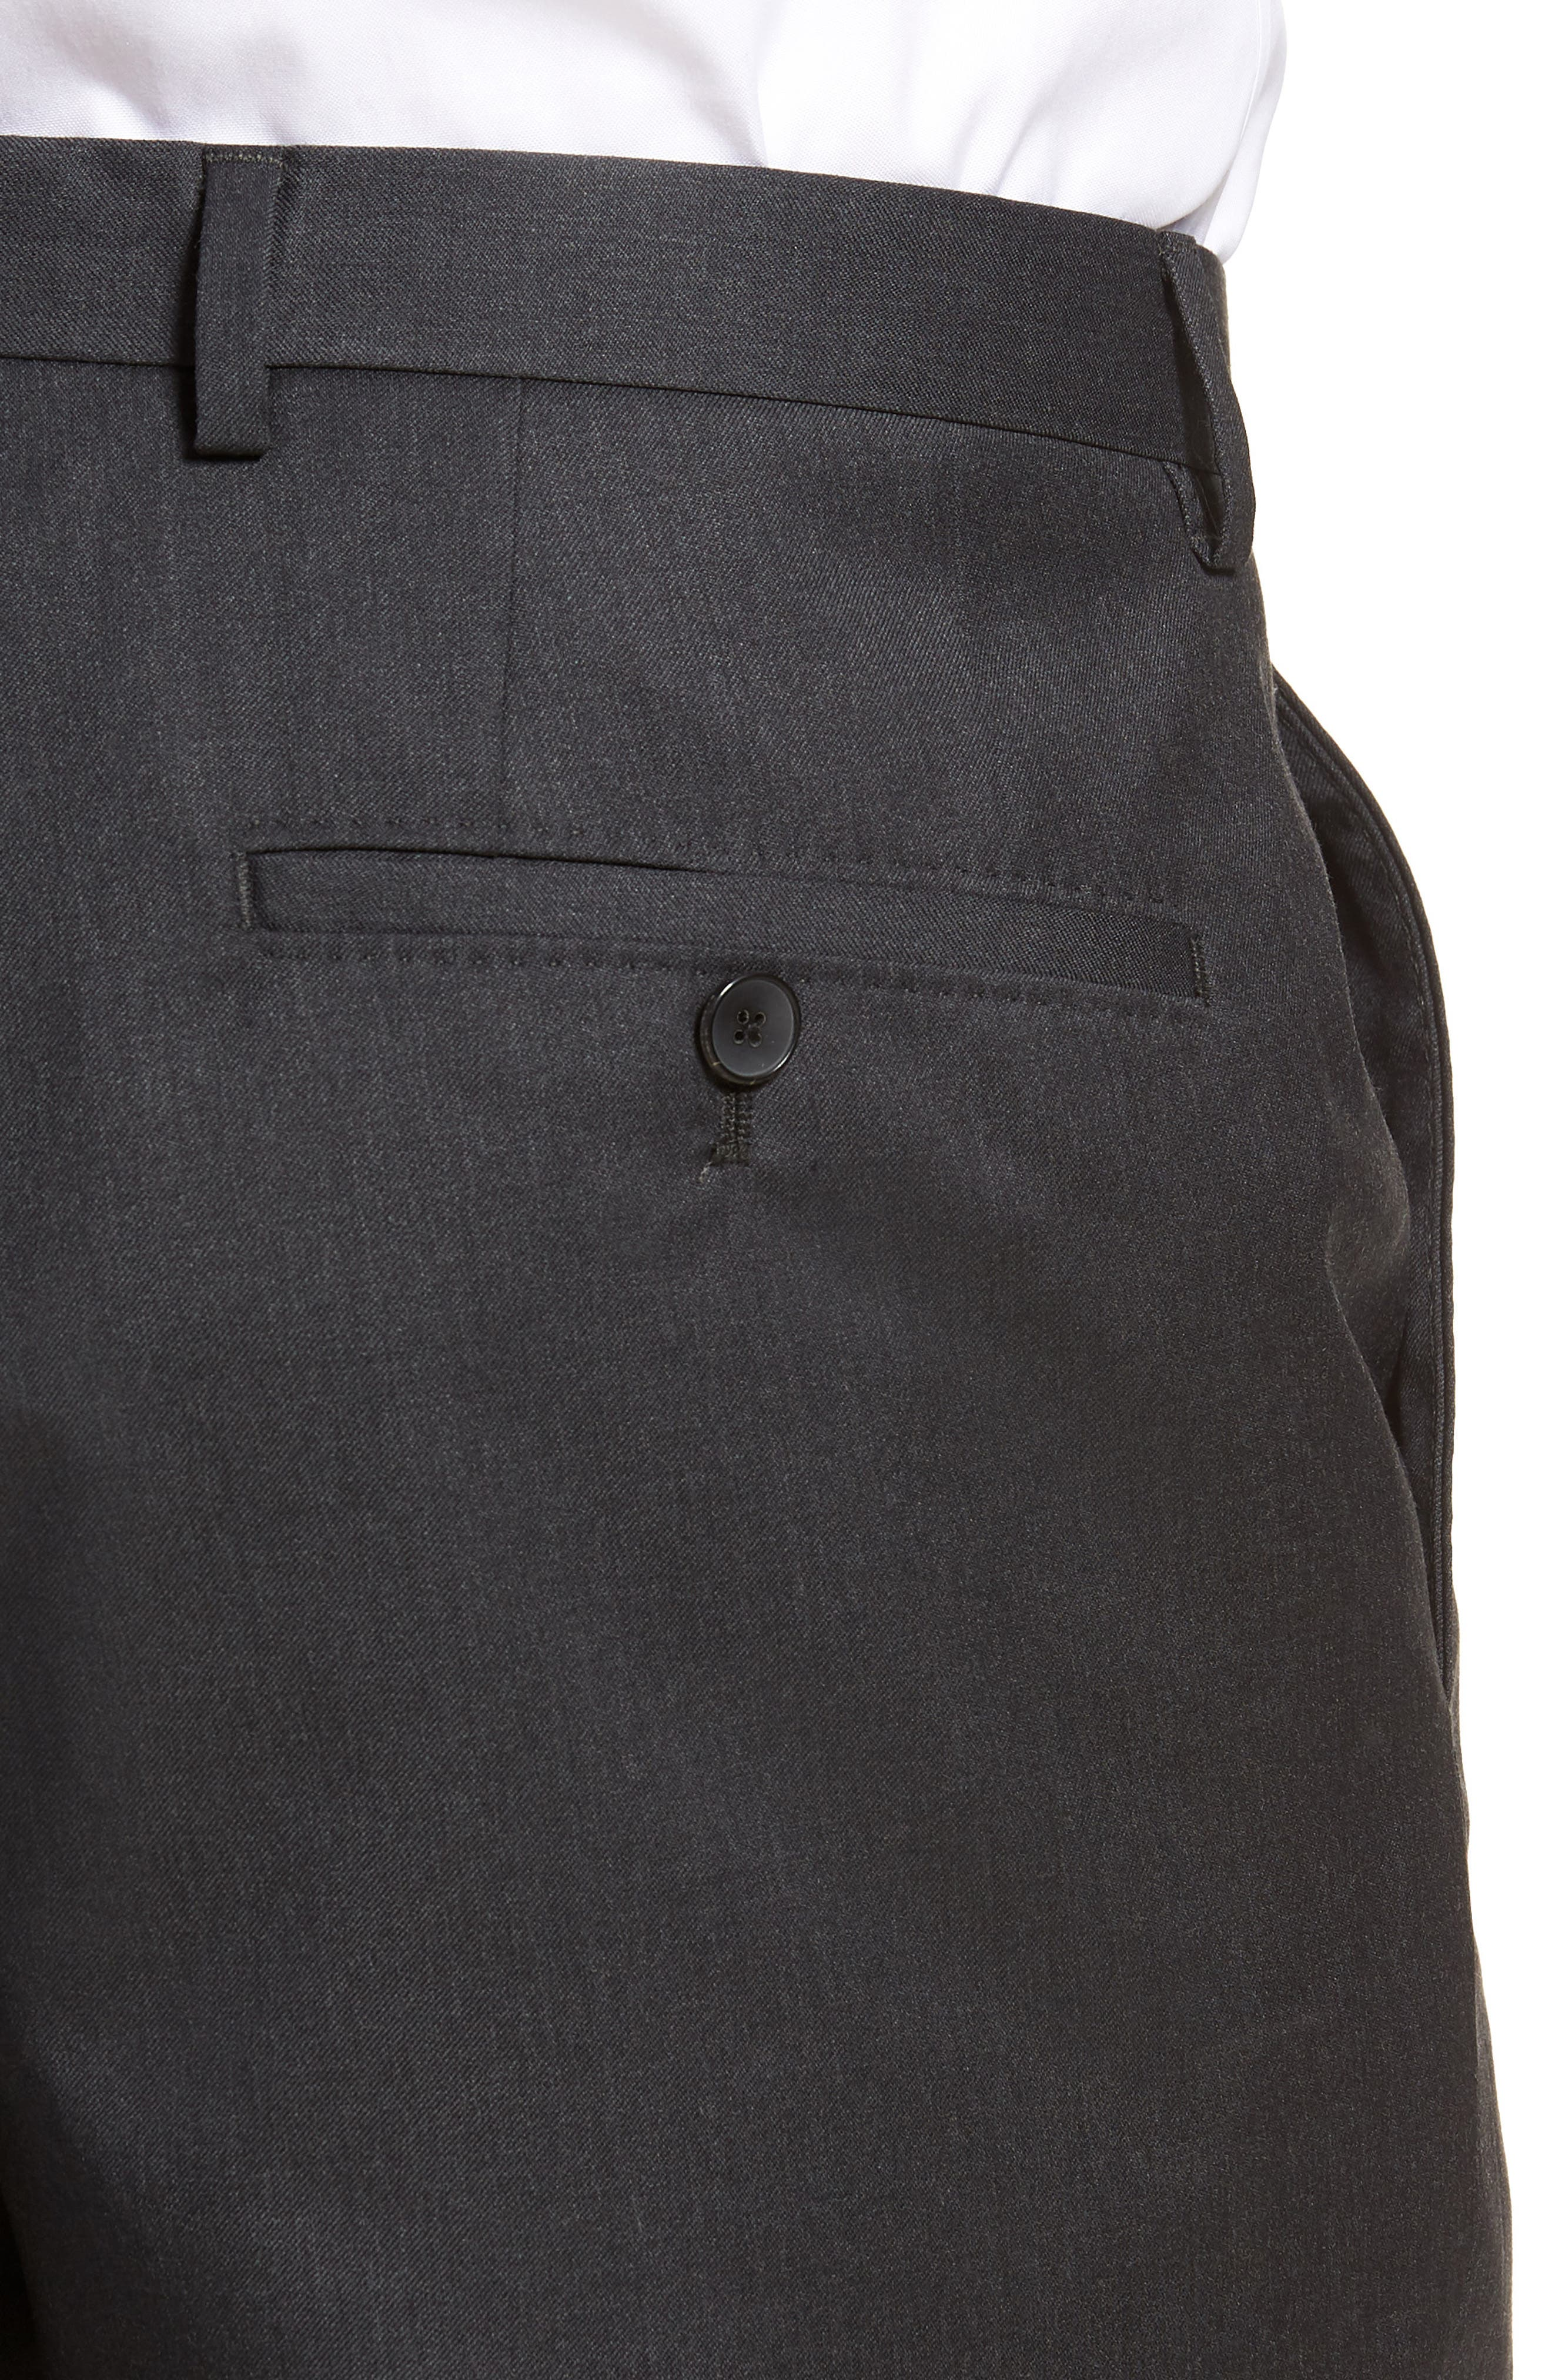 Lenon CYL Flat Front Solid Wool Trousers,                             Alternate thumbnail 4, color,                             Dark Grey